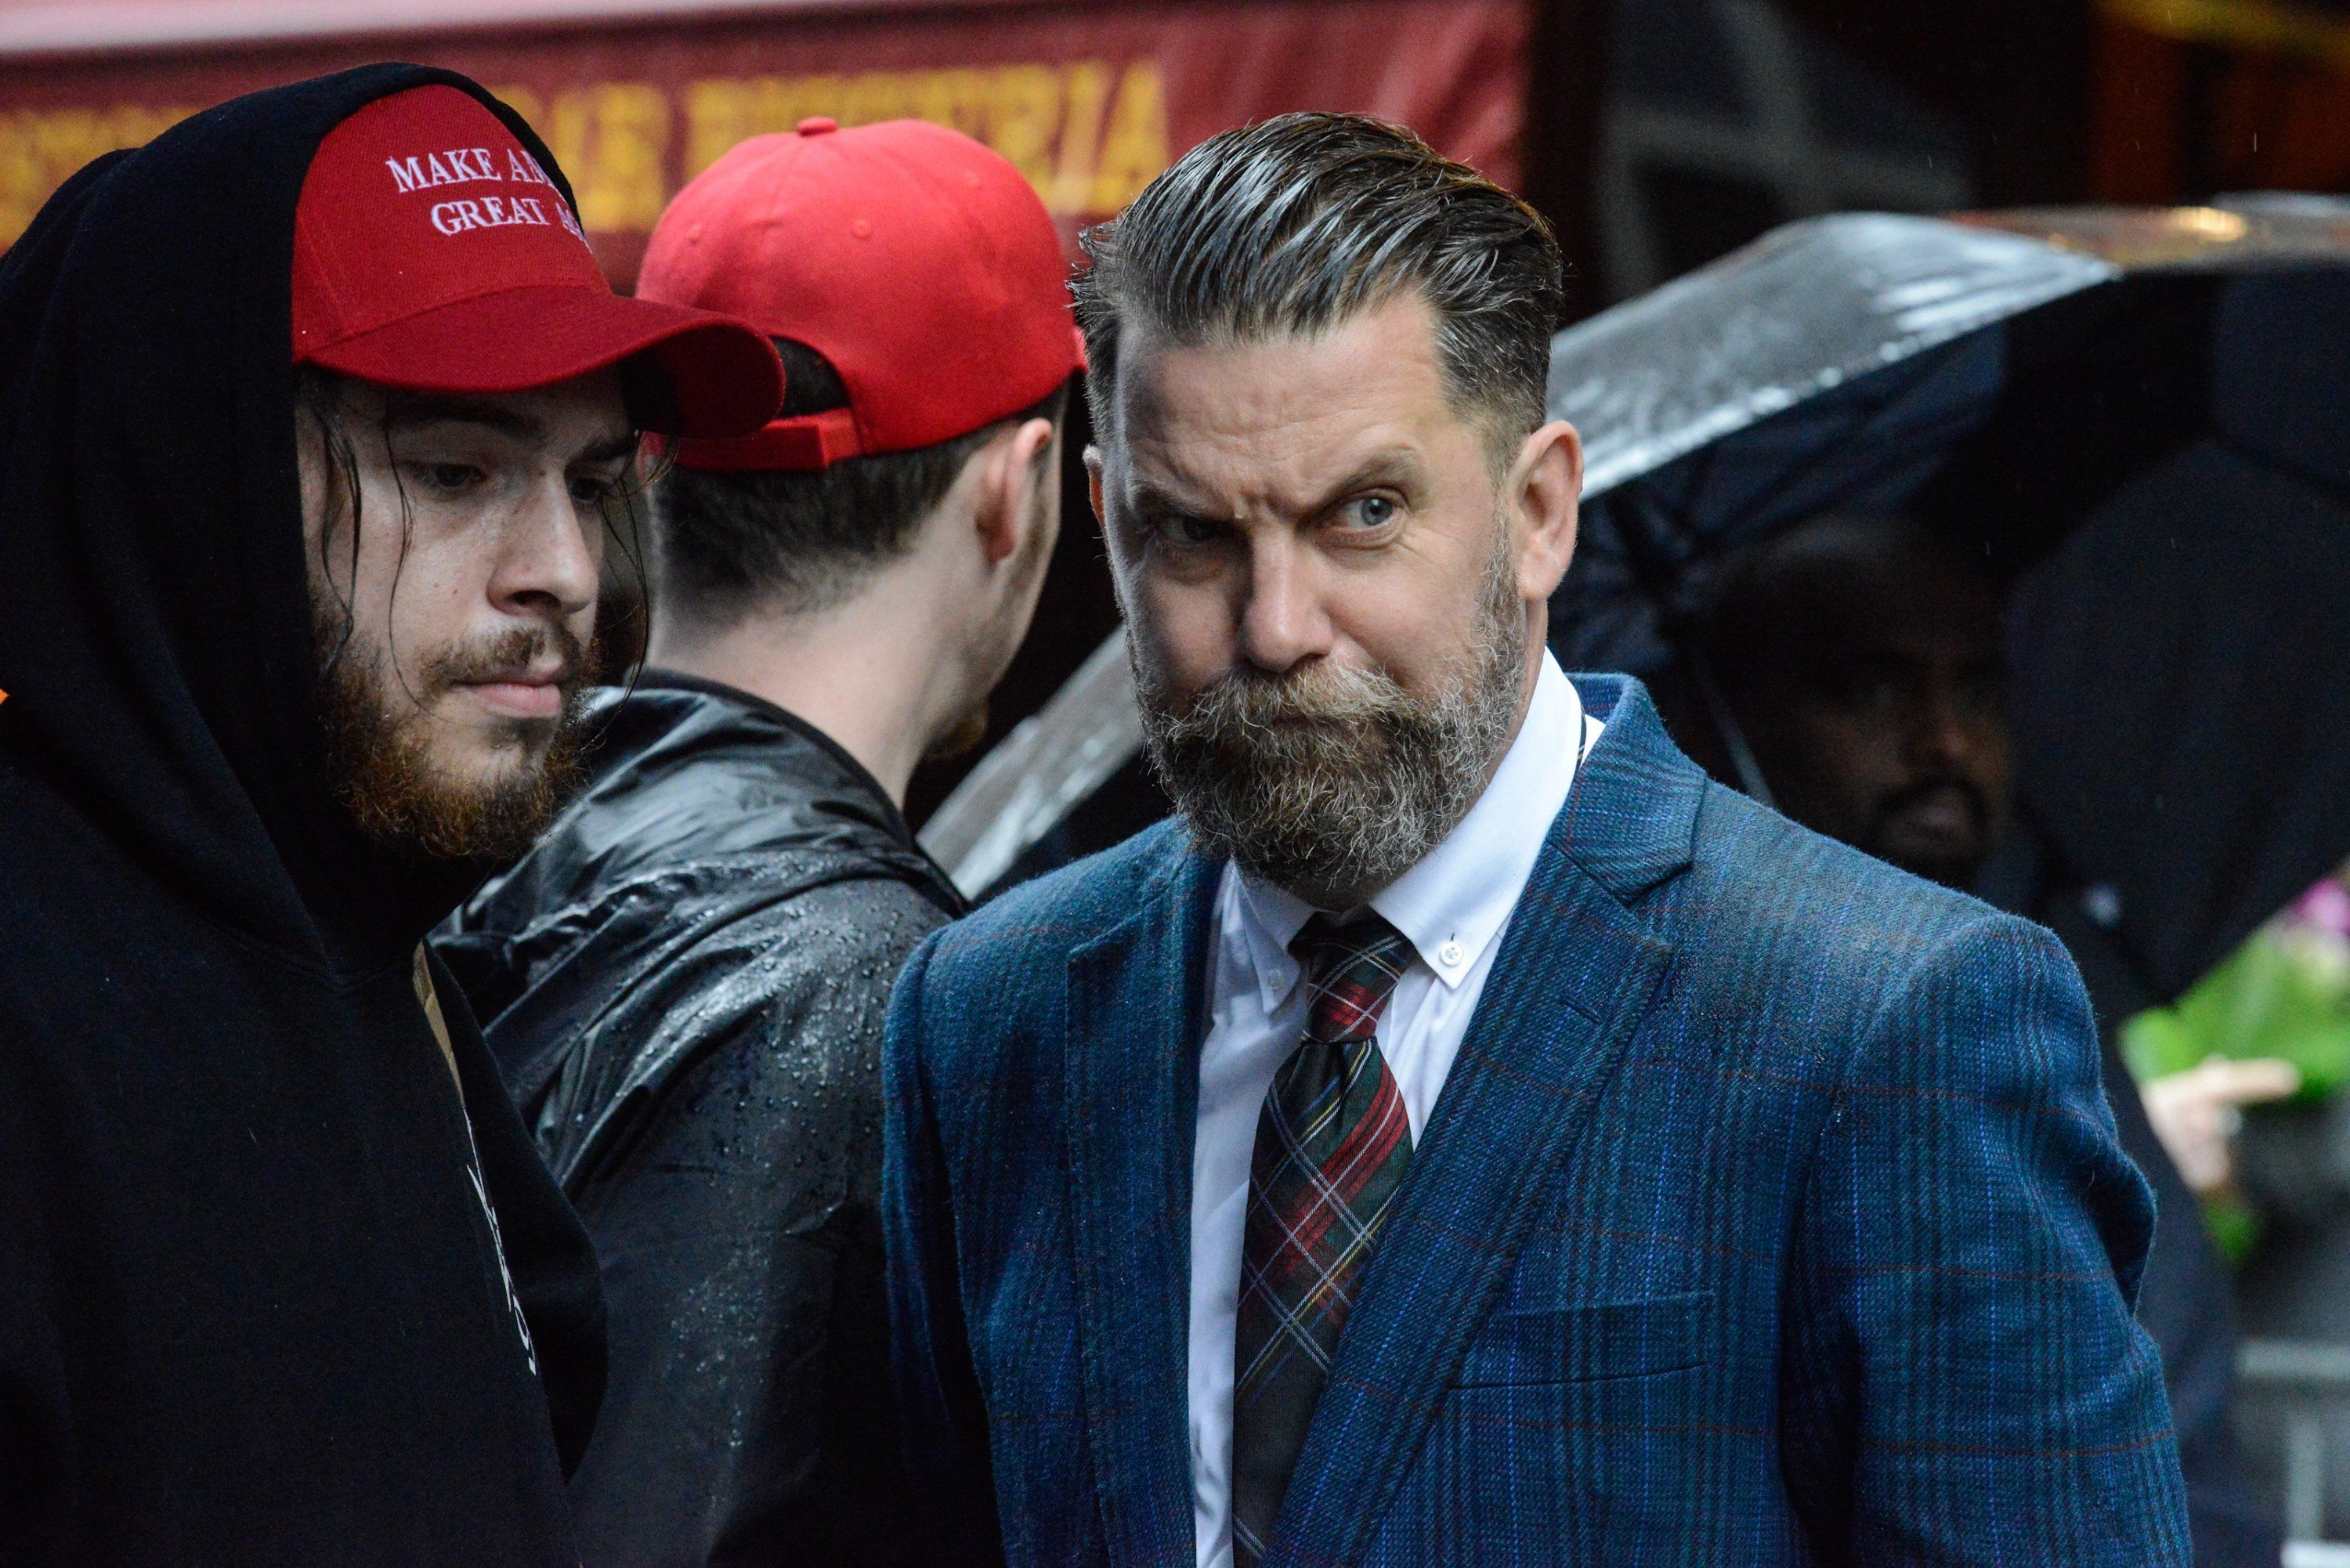 The Proud Boys, The GOP And 'The Fascist Creep'